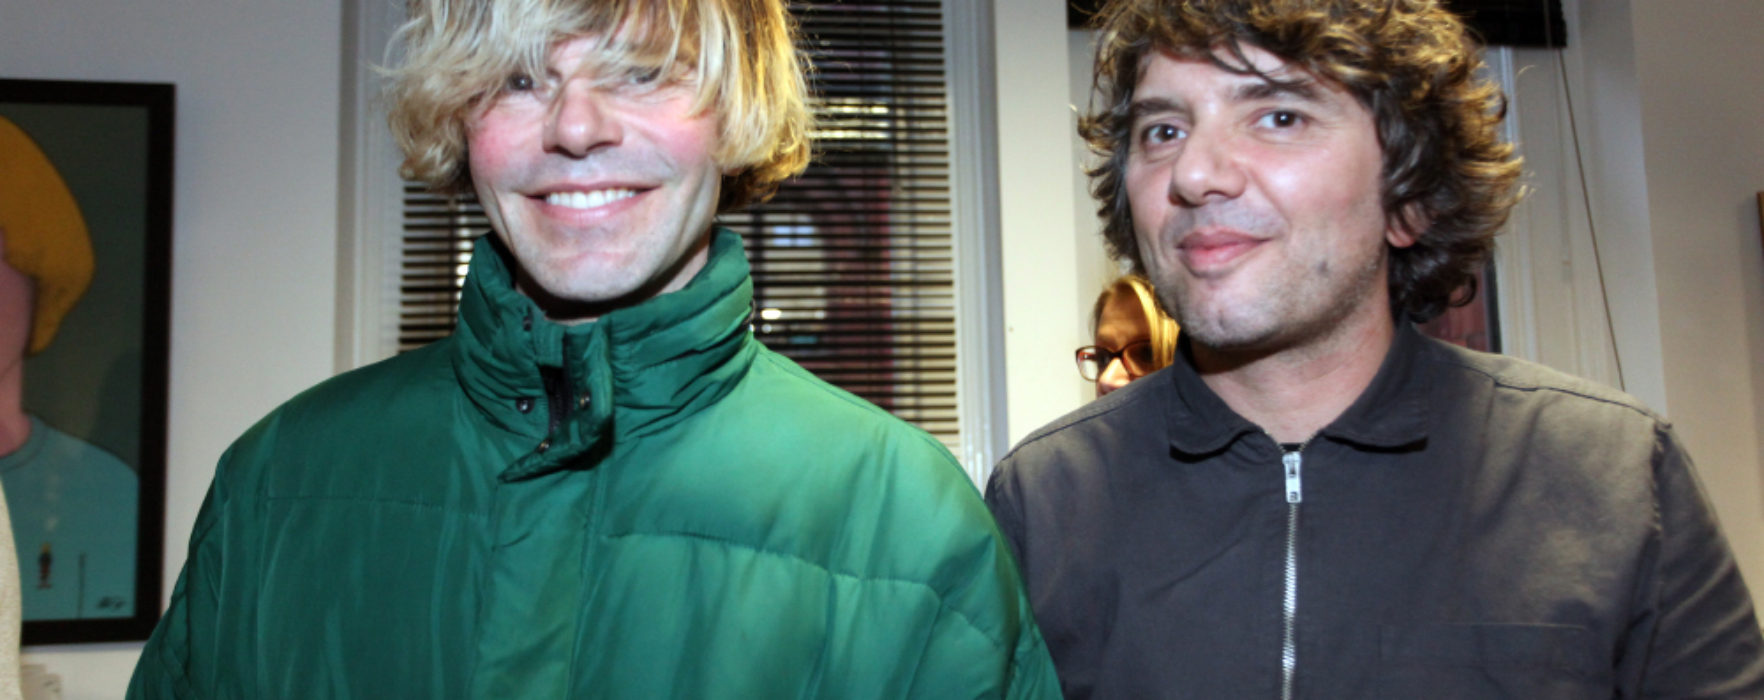 An Exclusive Look Into The Charlatans Secret Gig in Collaboration With Modern English